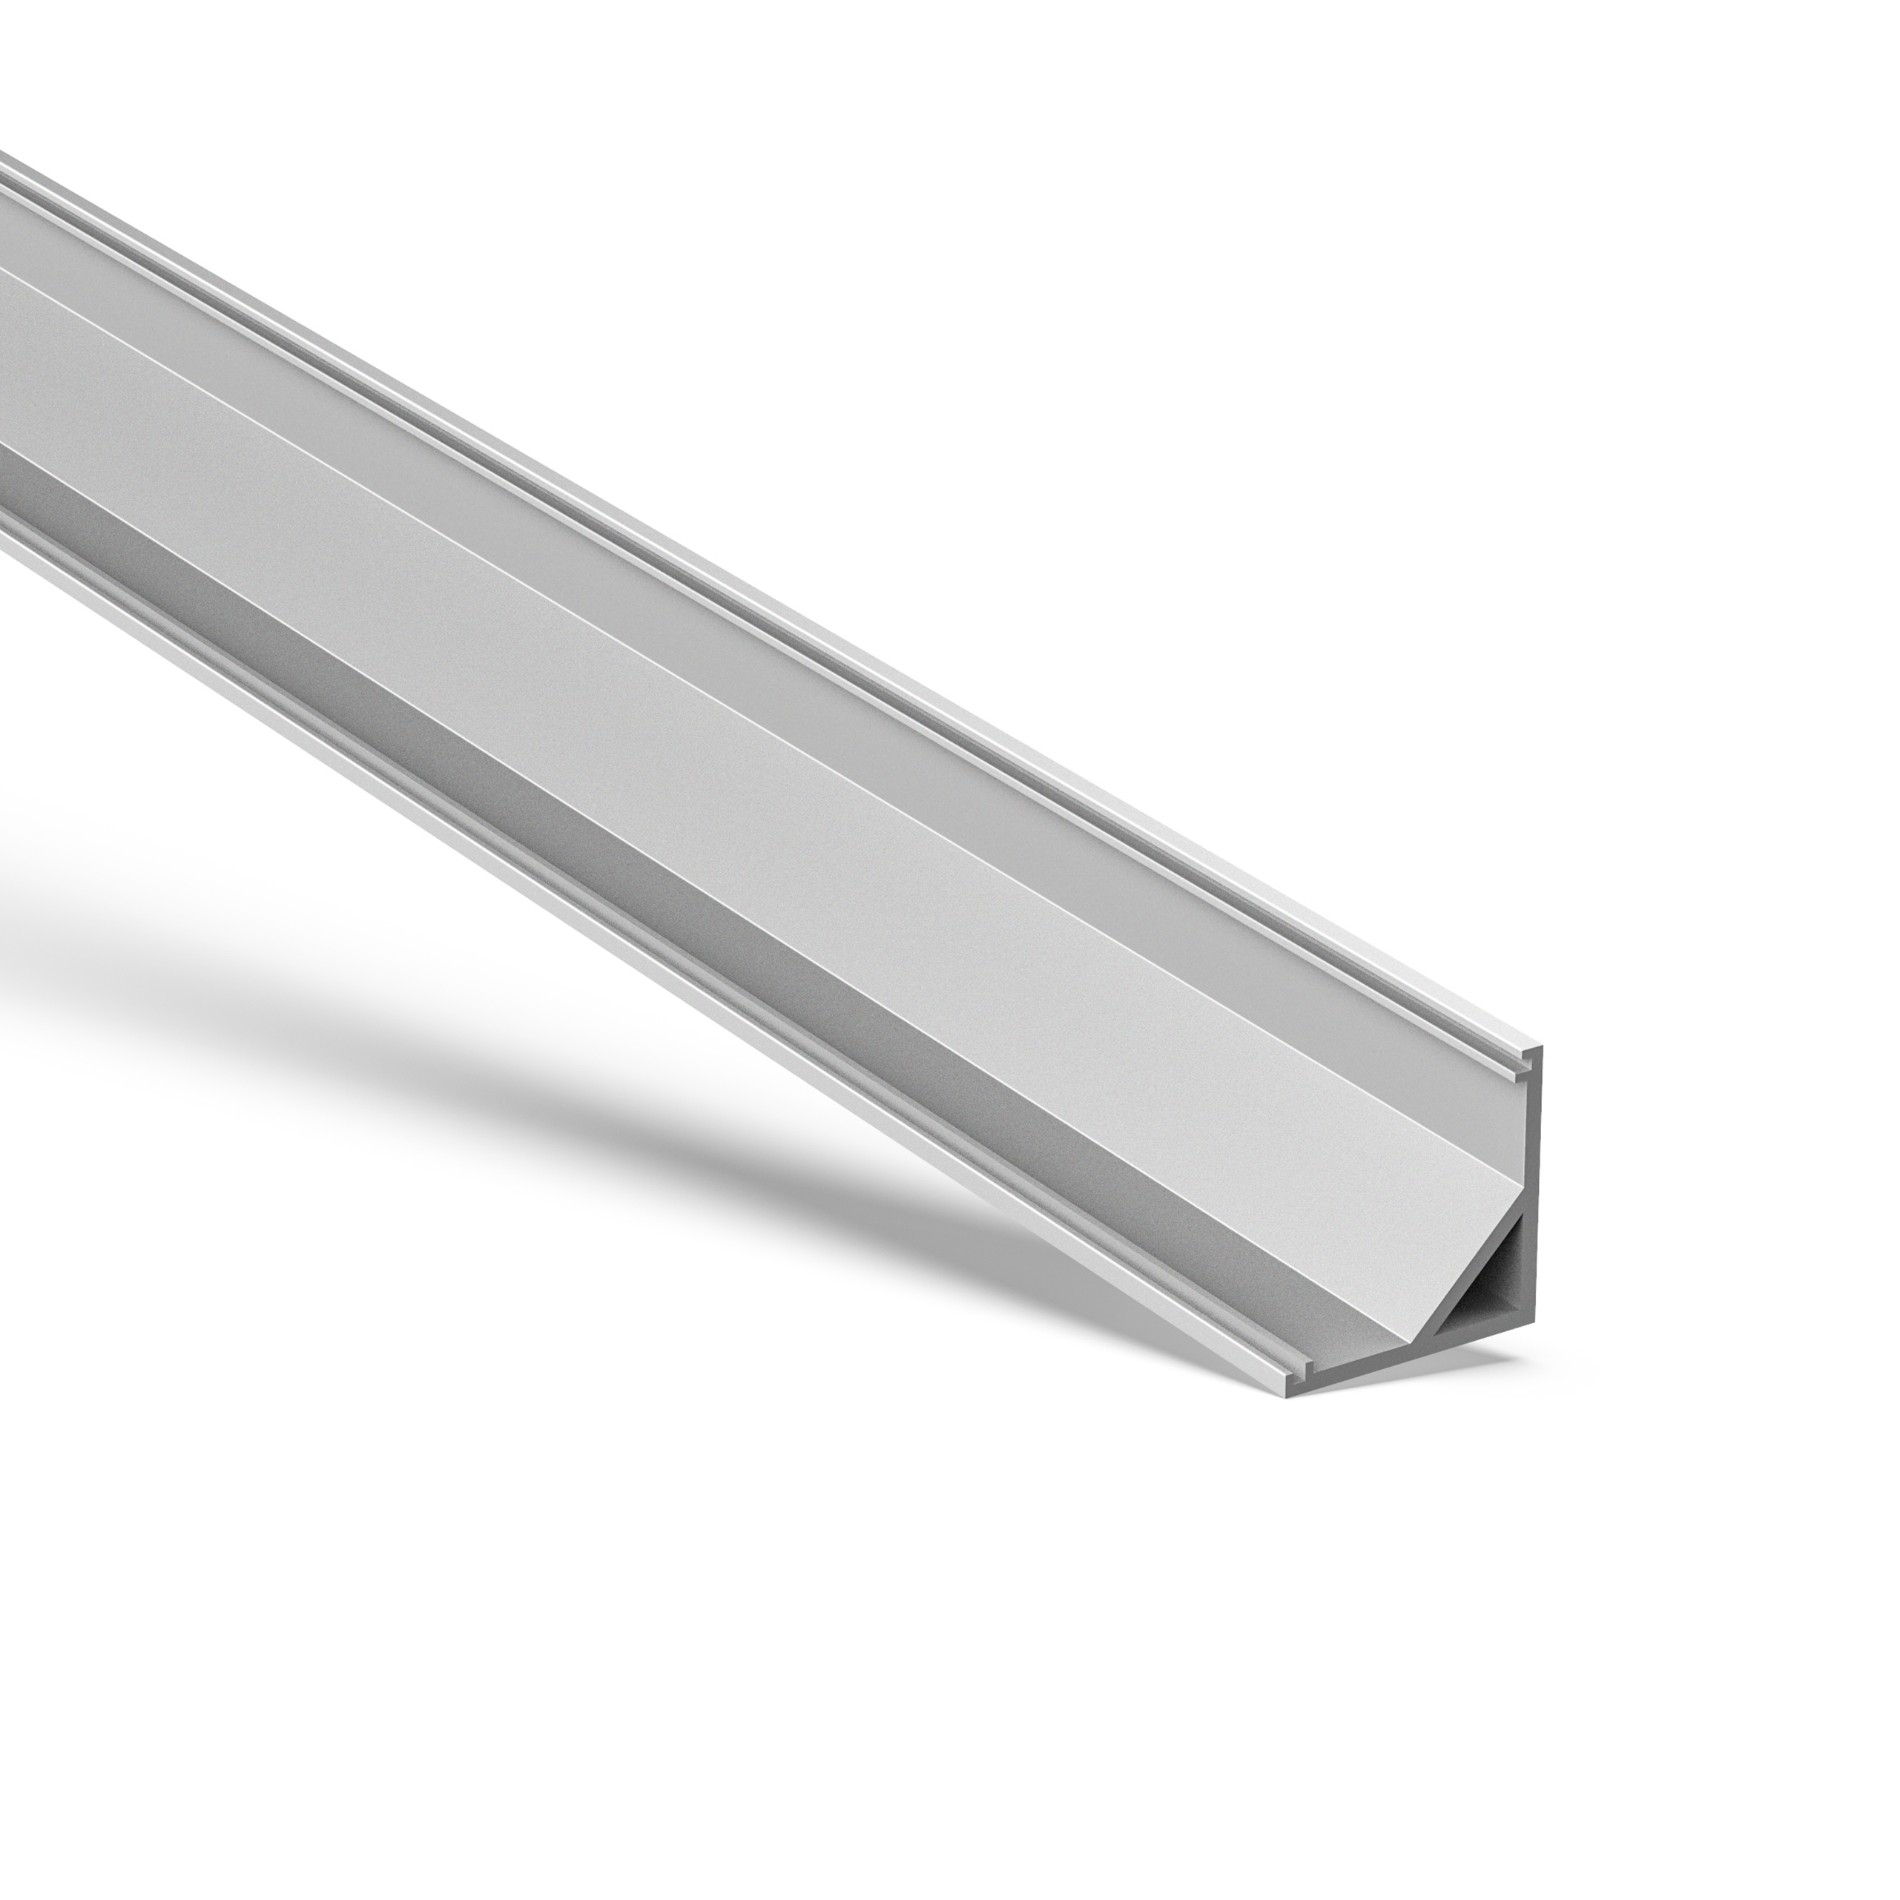 AC1 45˚ Corner Aluminium Profile with square cover 16x16mm